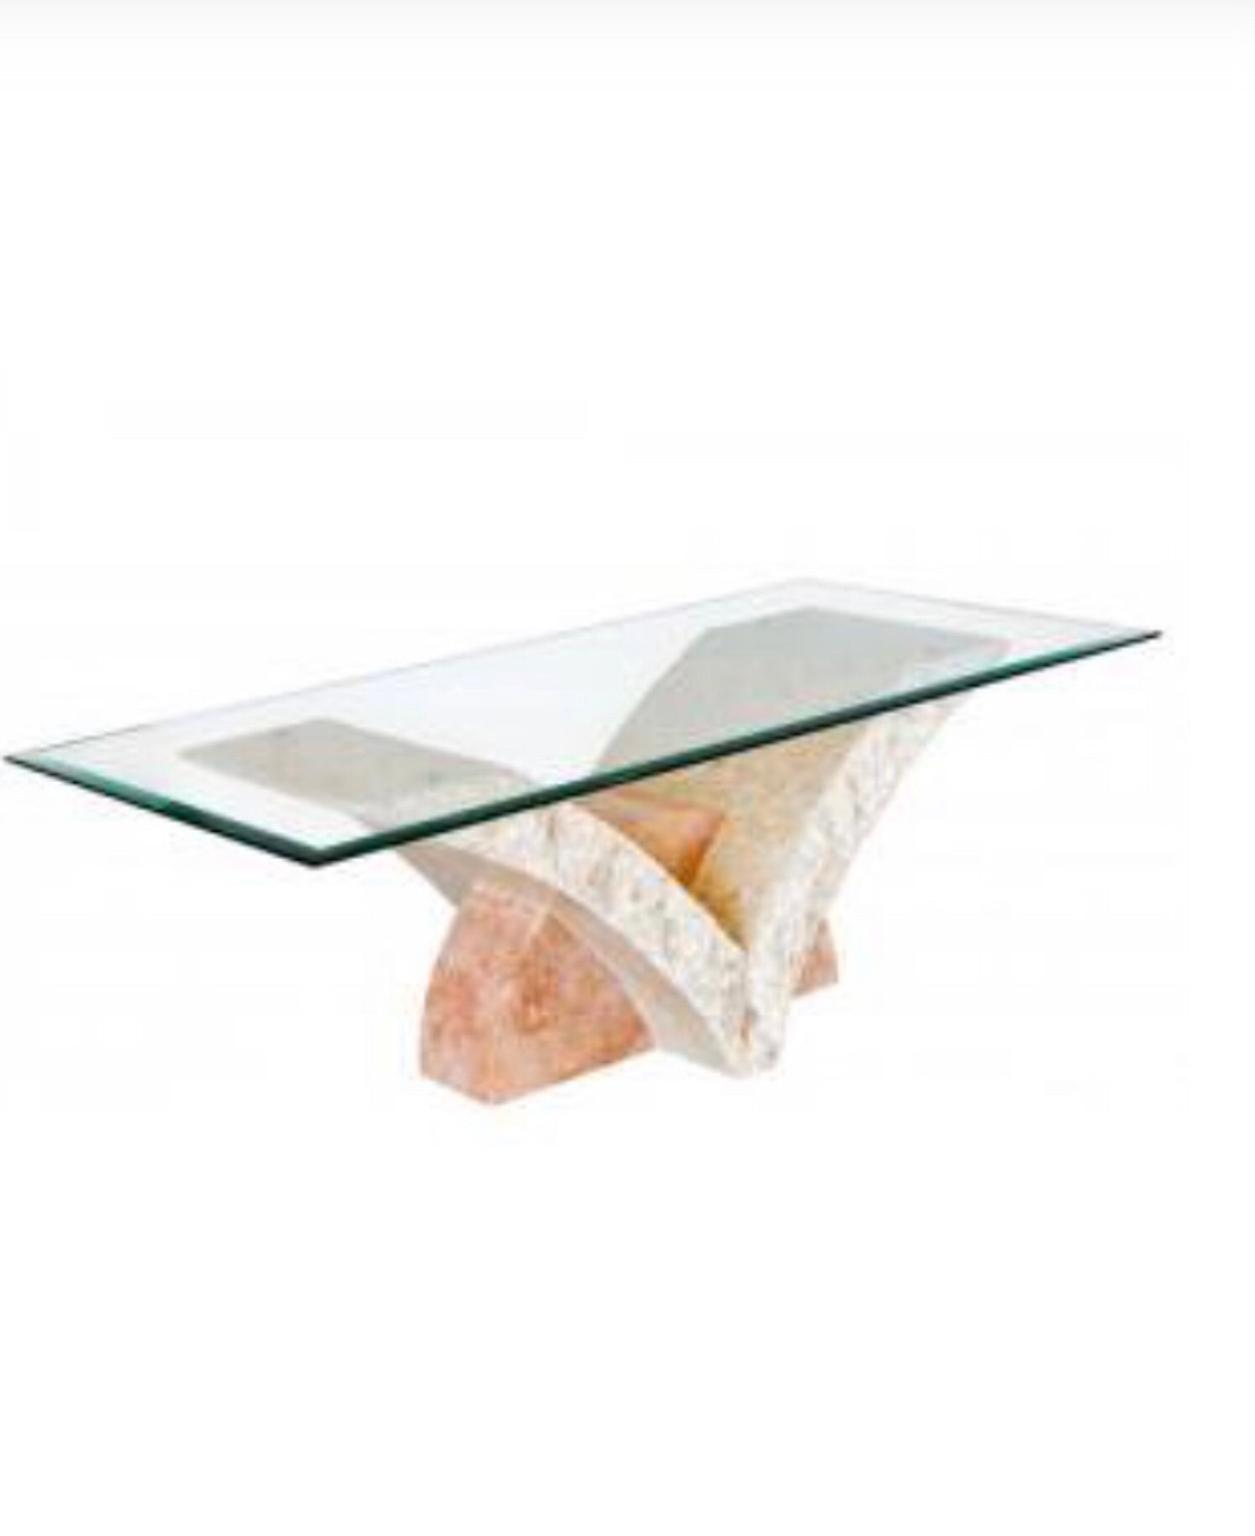 Marble Coffee Table With Oval Glass Top In Wd5 Rivers For 110 00